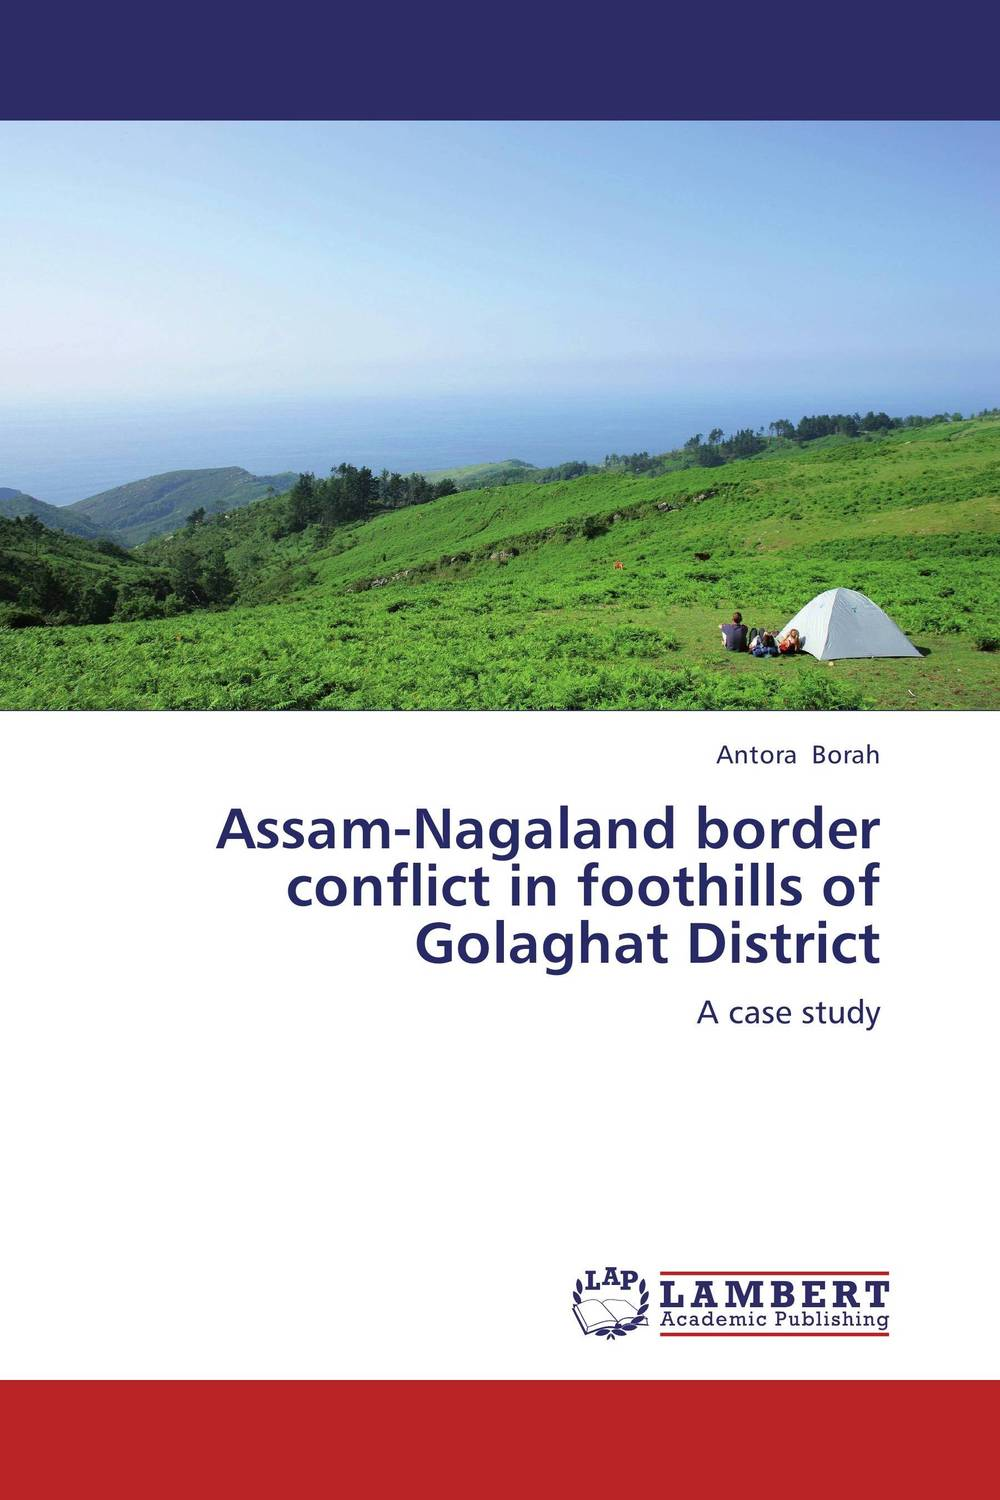 Assam-Nagaland border conflict in foothills of Golaghat District trans border ethnic hegemony and political conflict in africa